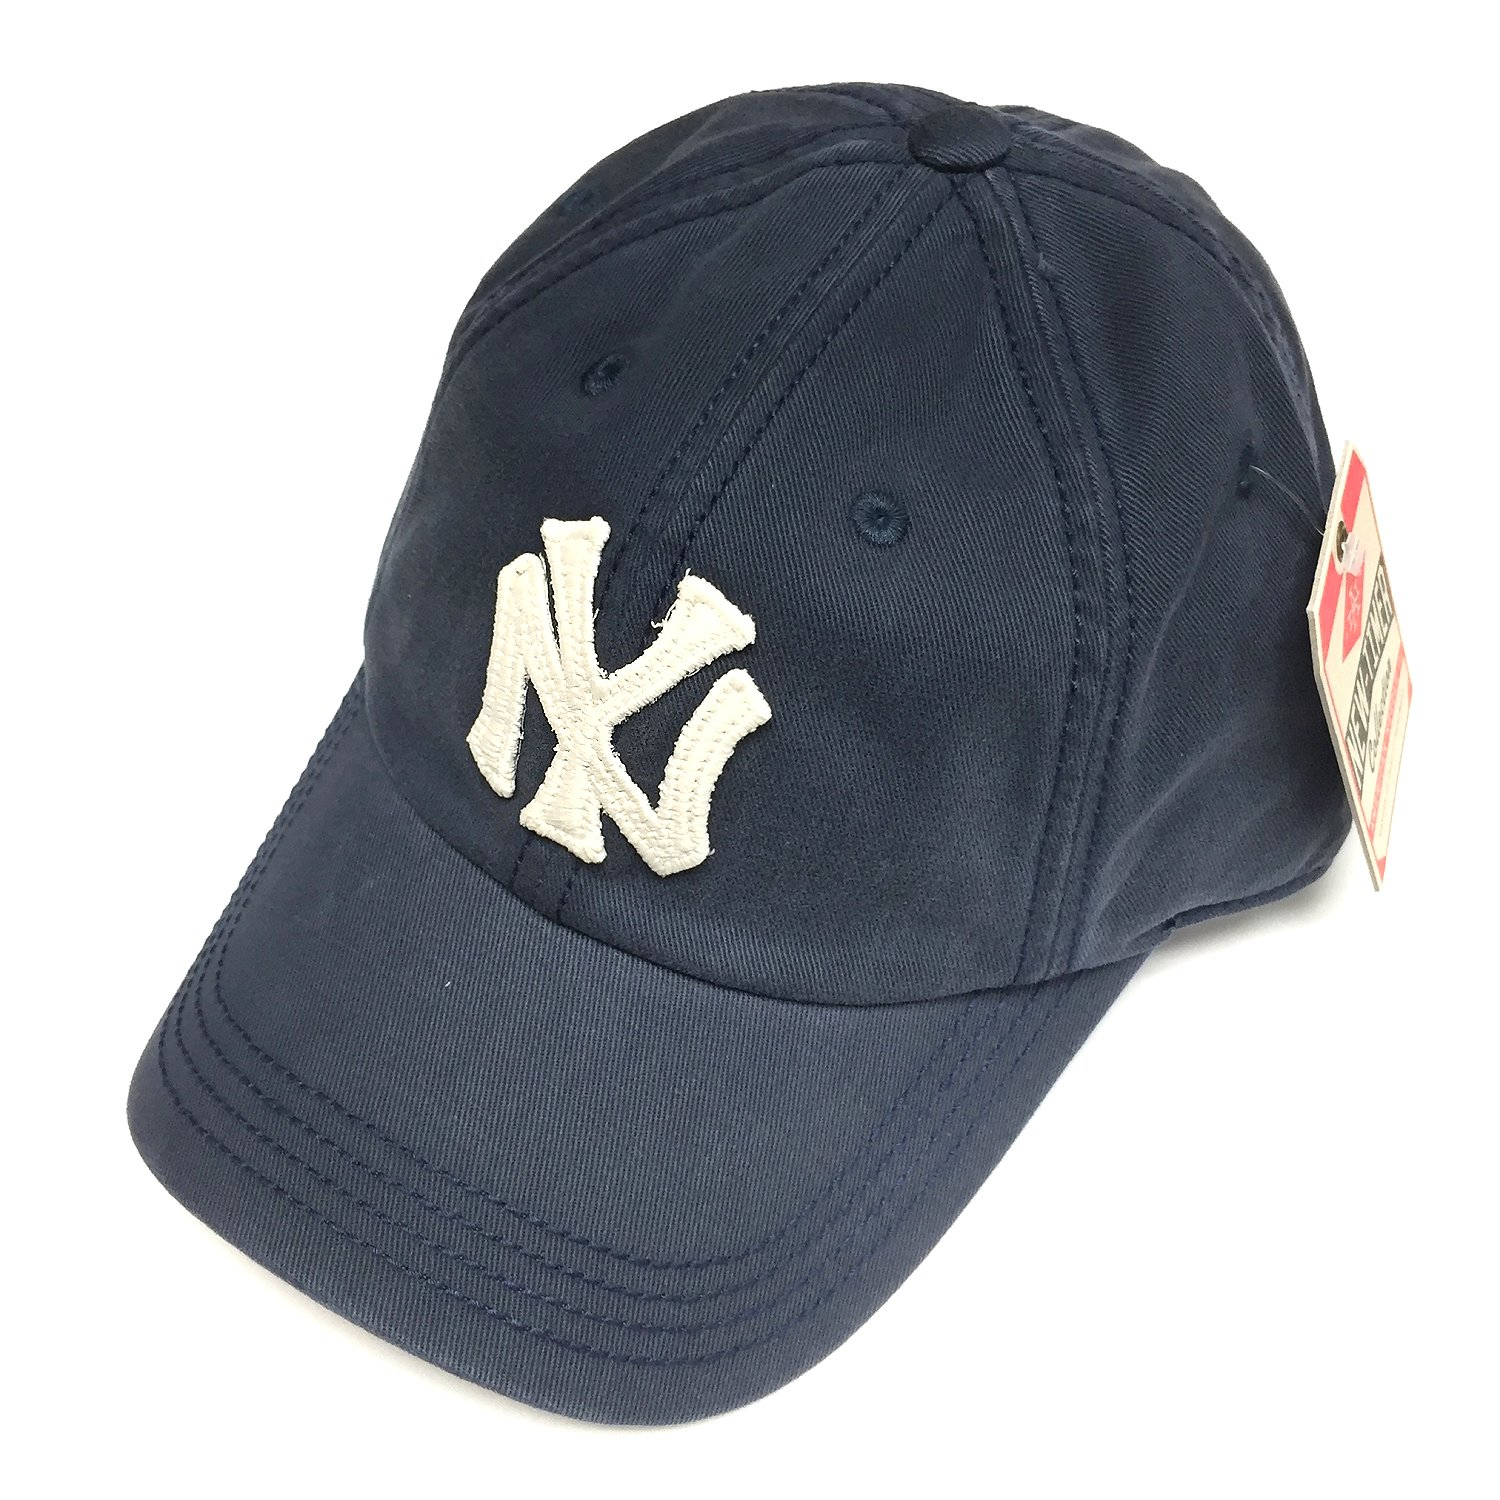 22caa86e75b44 Get Quotations · American Needle MLB New York Yankees New Timer Slouch Retro  Snapback Cap